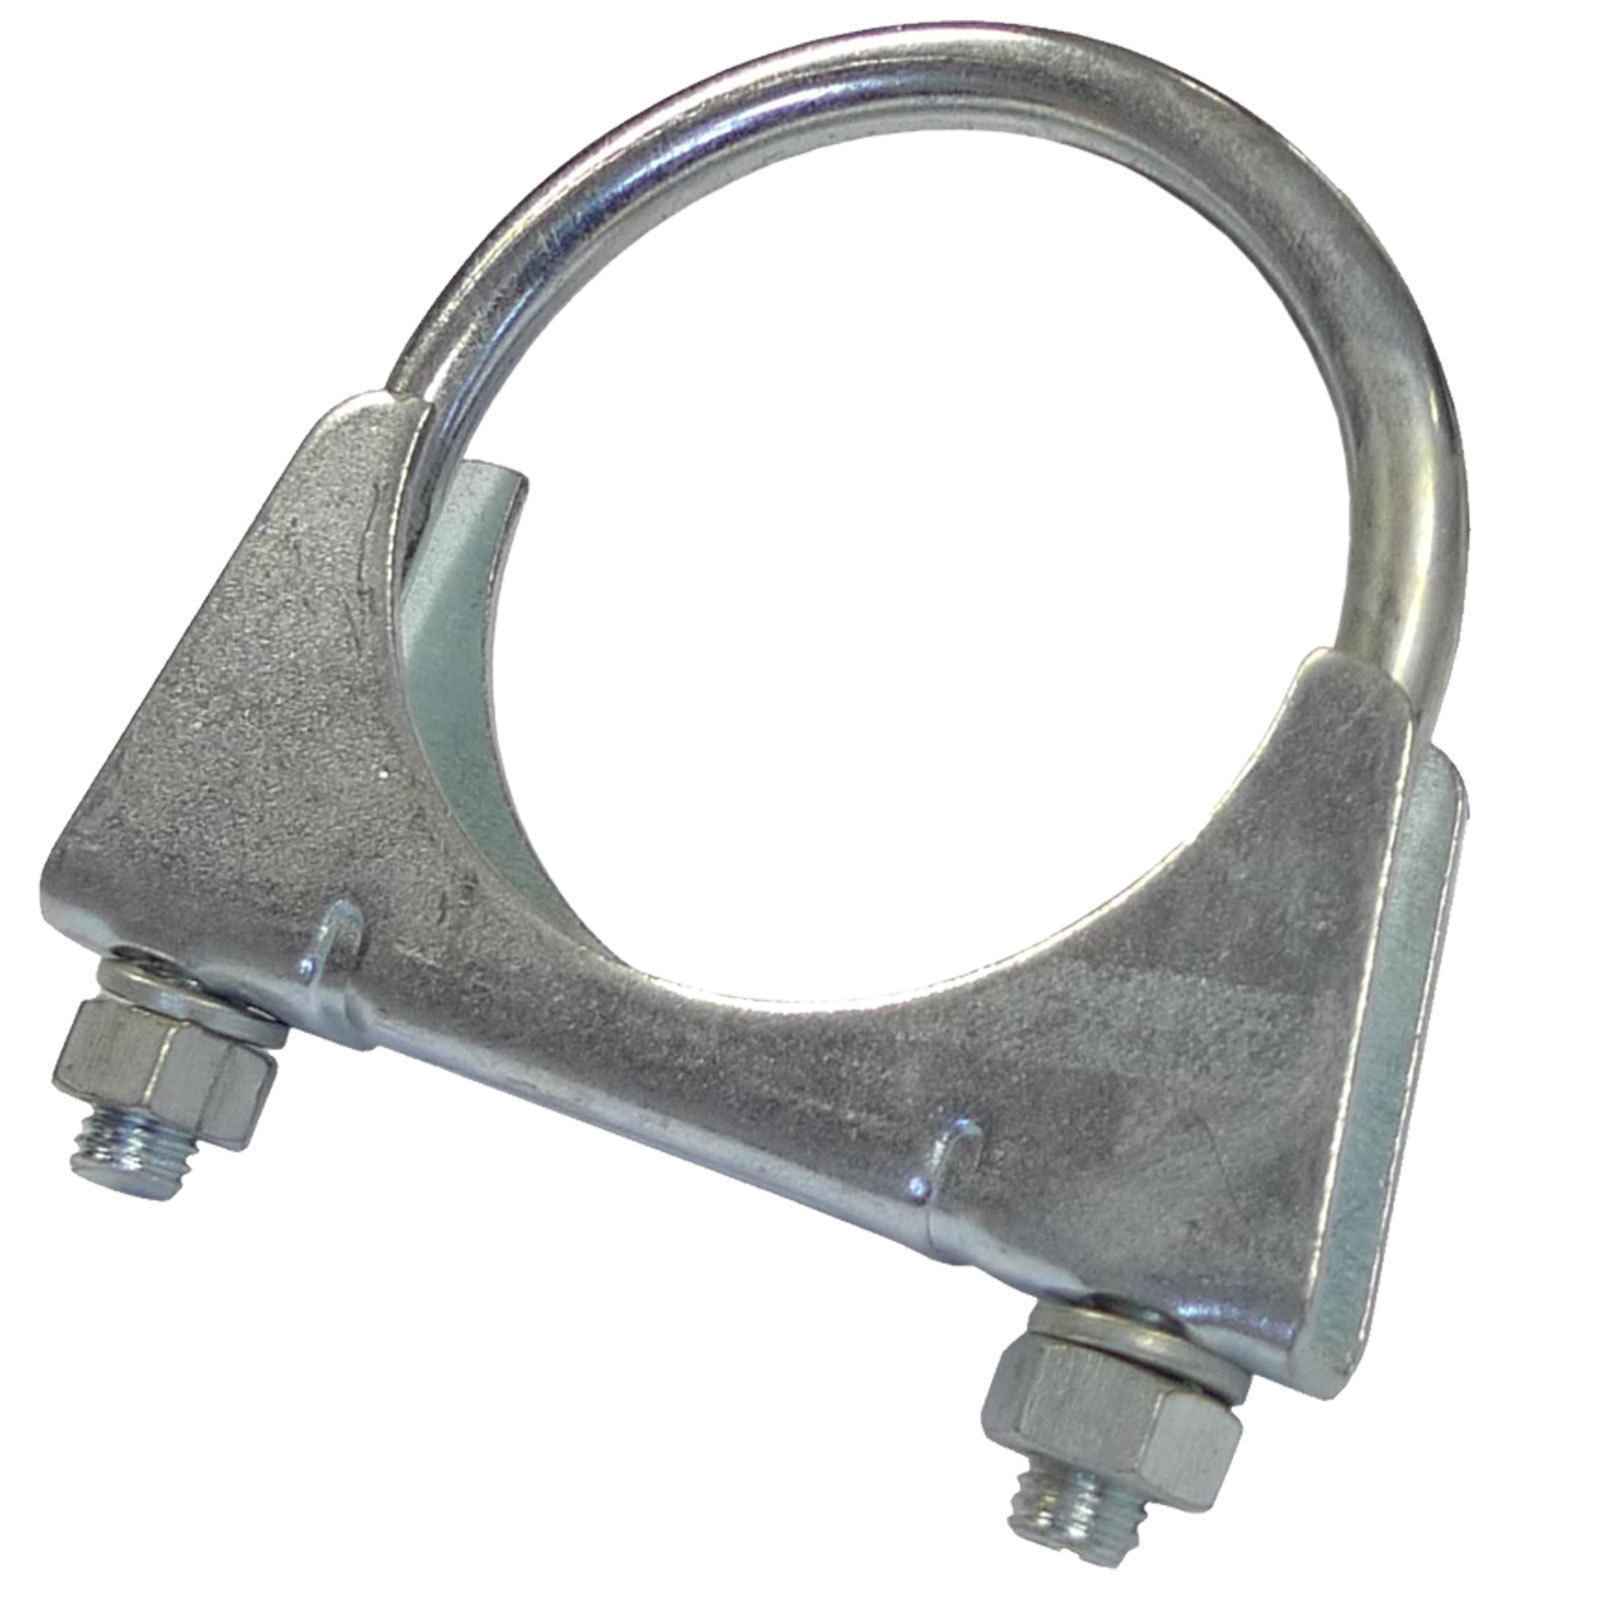 Pack of 10 52mm Universal Exhaust Clamp